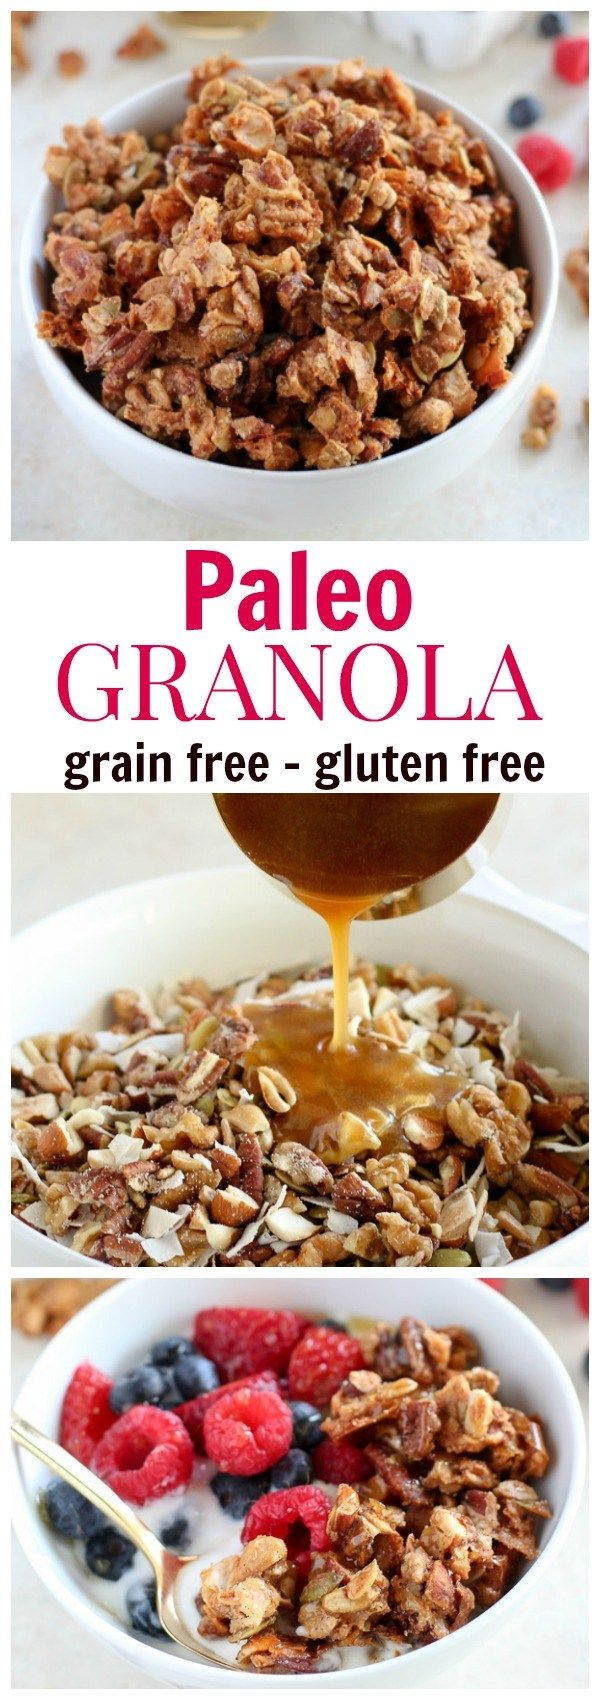 Grain Free Paleo Granola - A low-carb, grain-free Paleo granola filled with nuts, seeds, coconut and honey. Sweet, salty, crunchy and satisfying. All clean eating ingredients are used for this healthy granola recipe. Pin now to make for breakfast later.